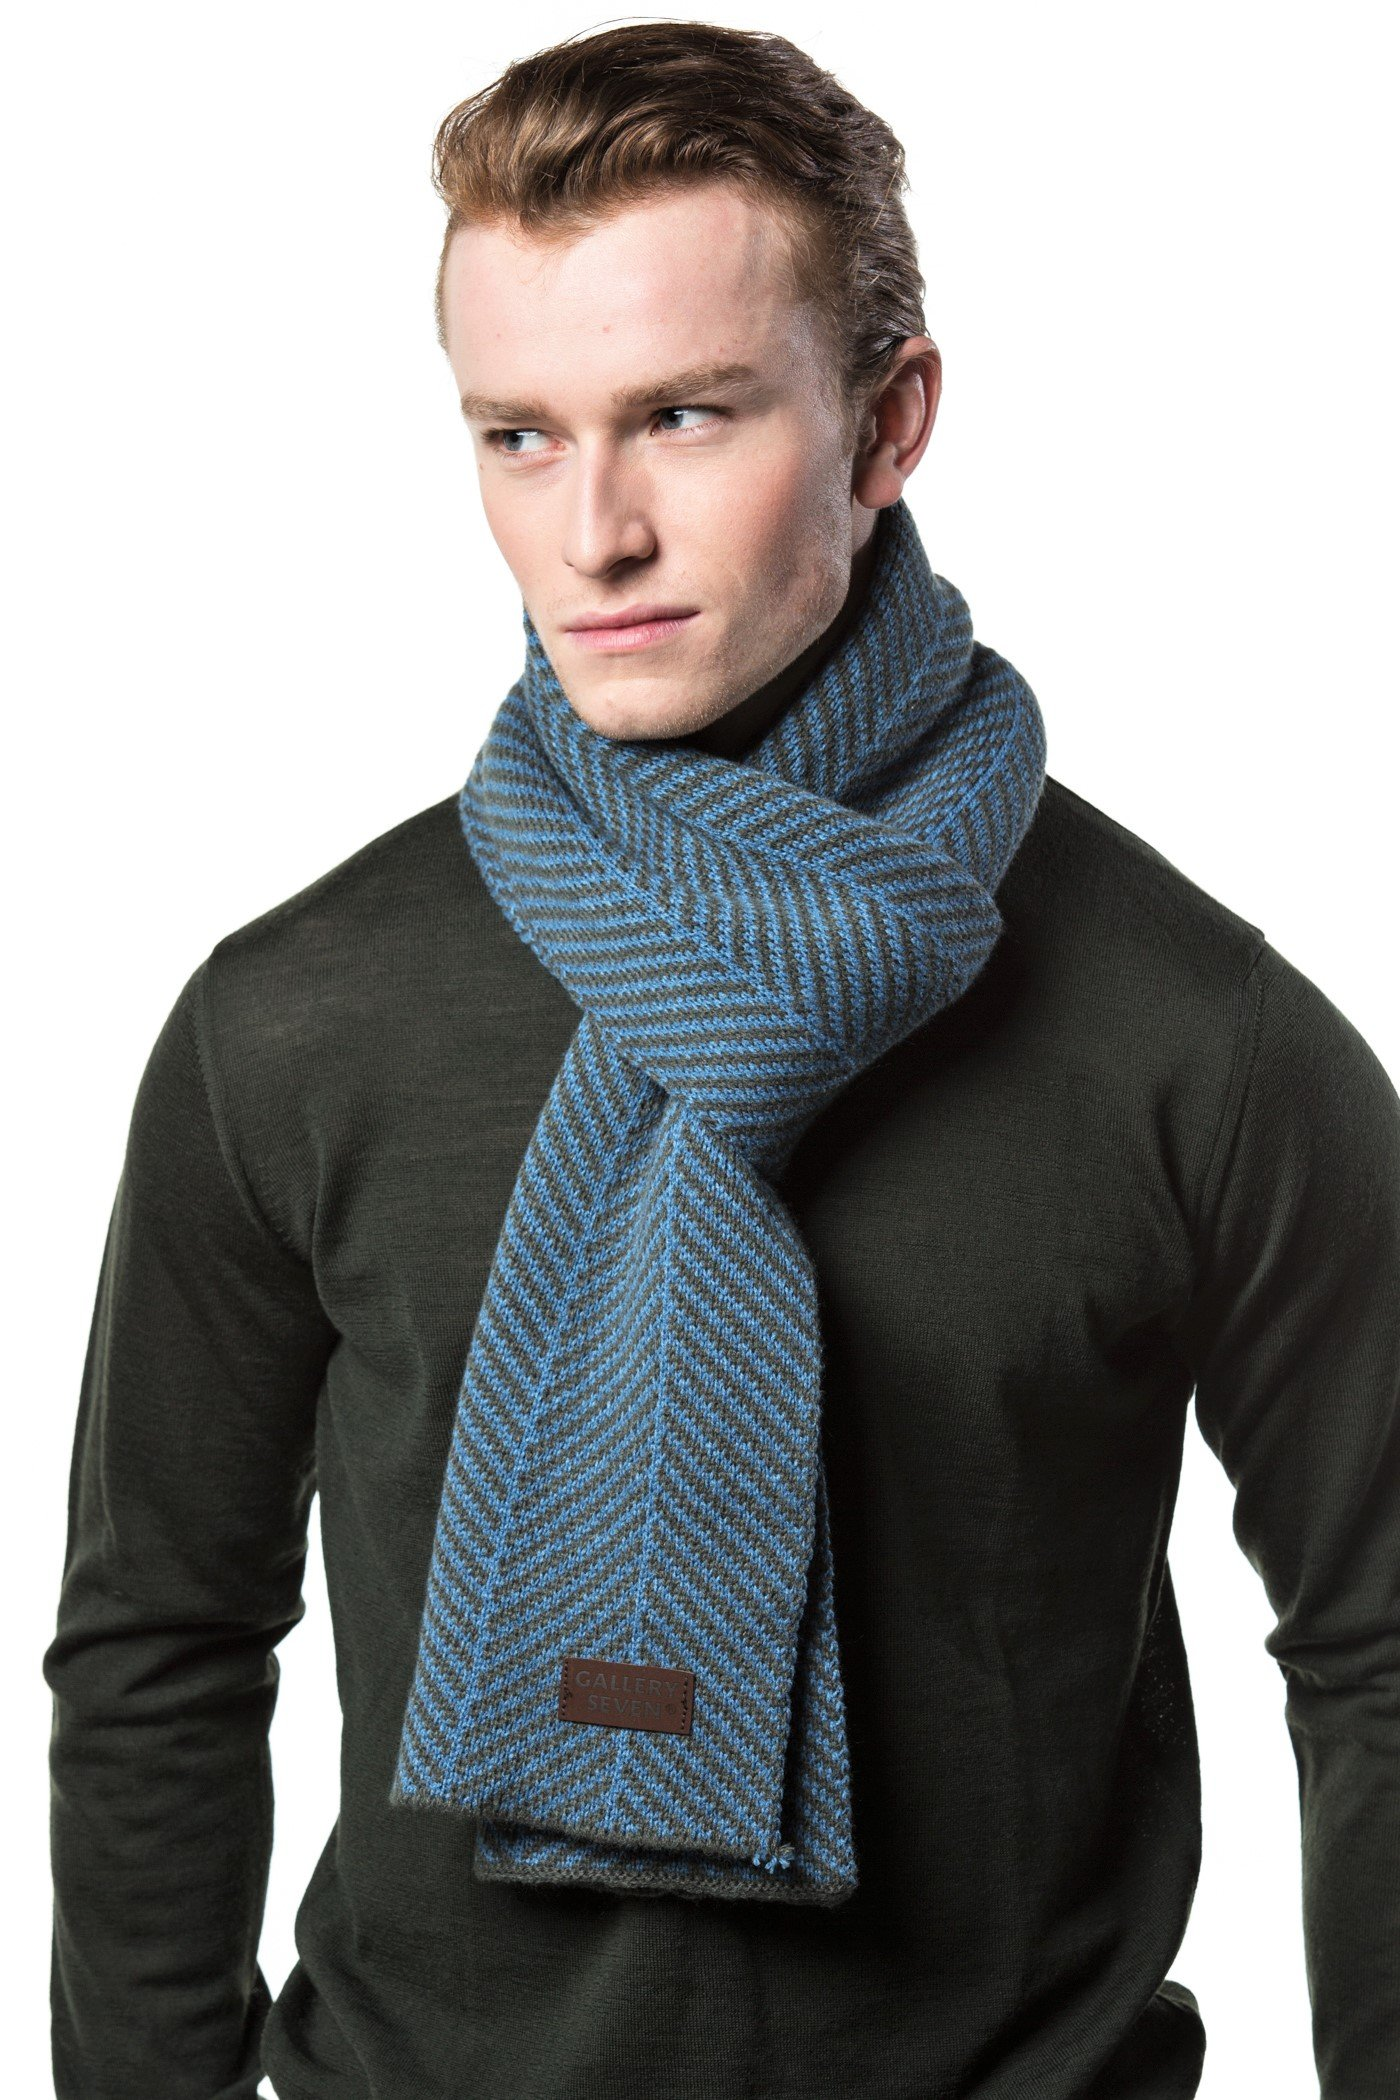 Gallery Seven Winter Scarf for Men, Soft Knit Scarve, in an Elegant Gift Box - Gray/Blue